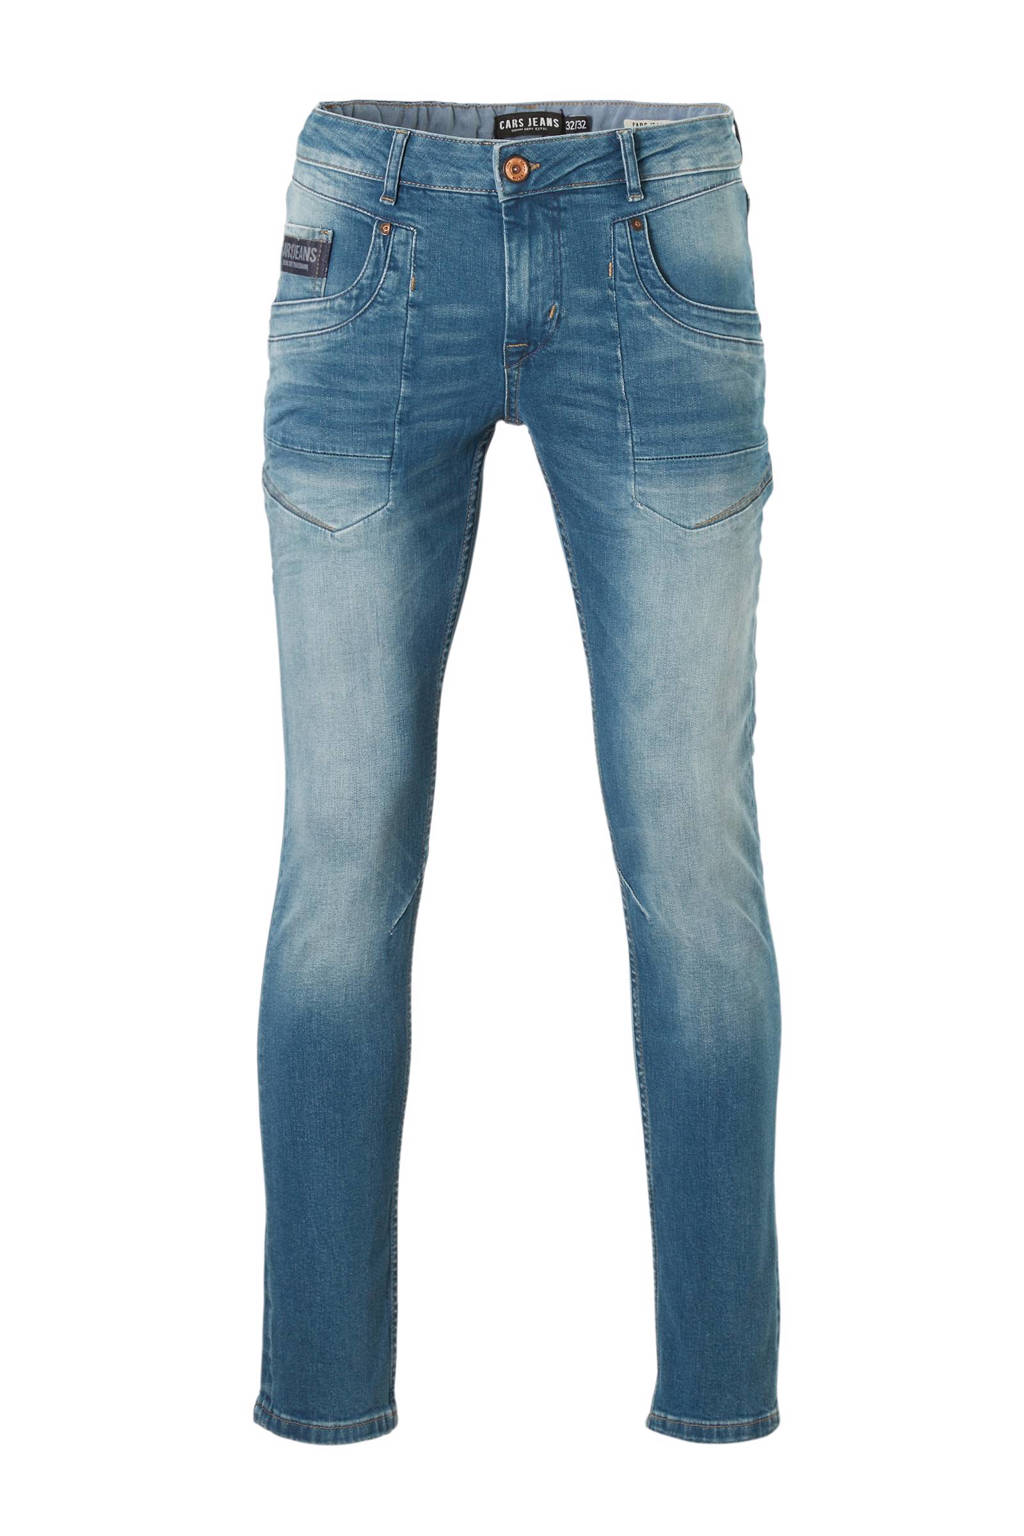 Cars slim fit jeans Stockton, Green Cast Used